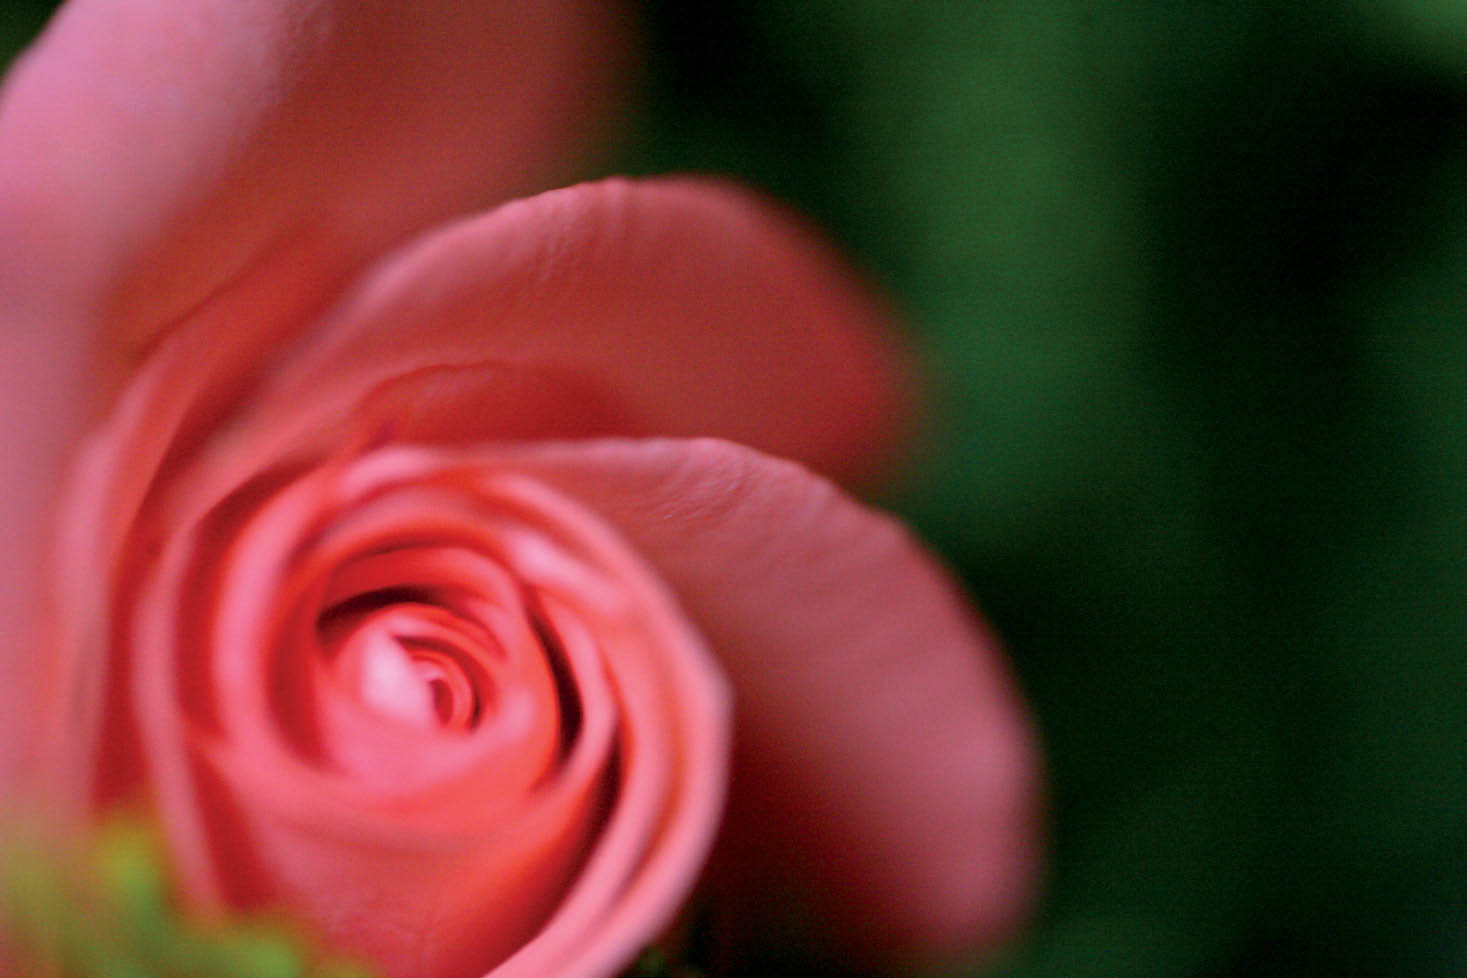 With the focal point of the tightly wrapped center of the rose in the bottom-left third of the frame, the rest is left empty, letting the flower carry the scene without competition.